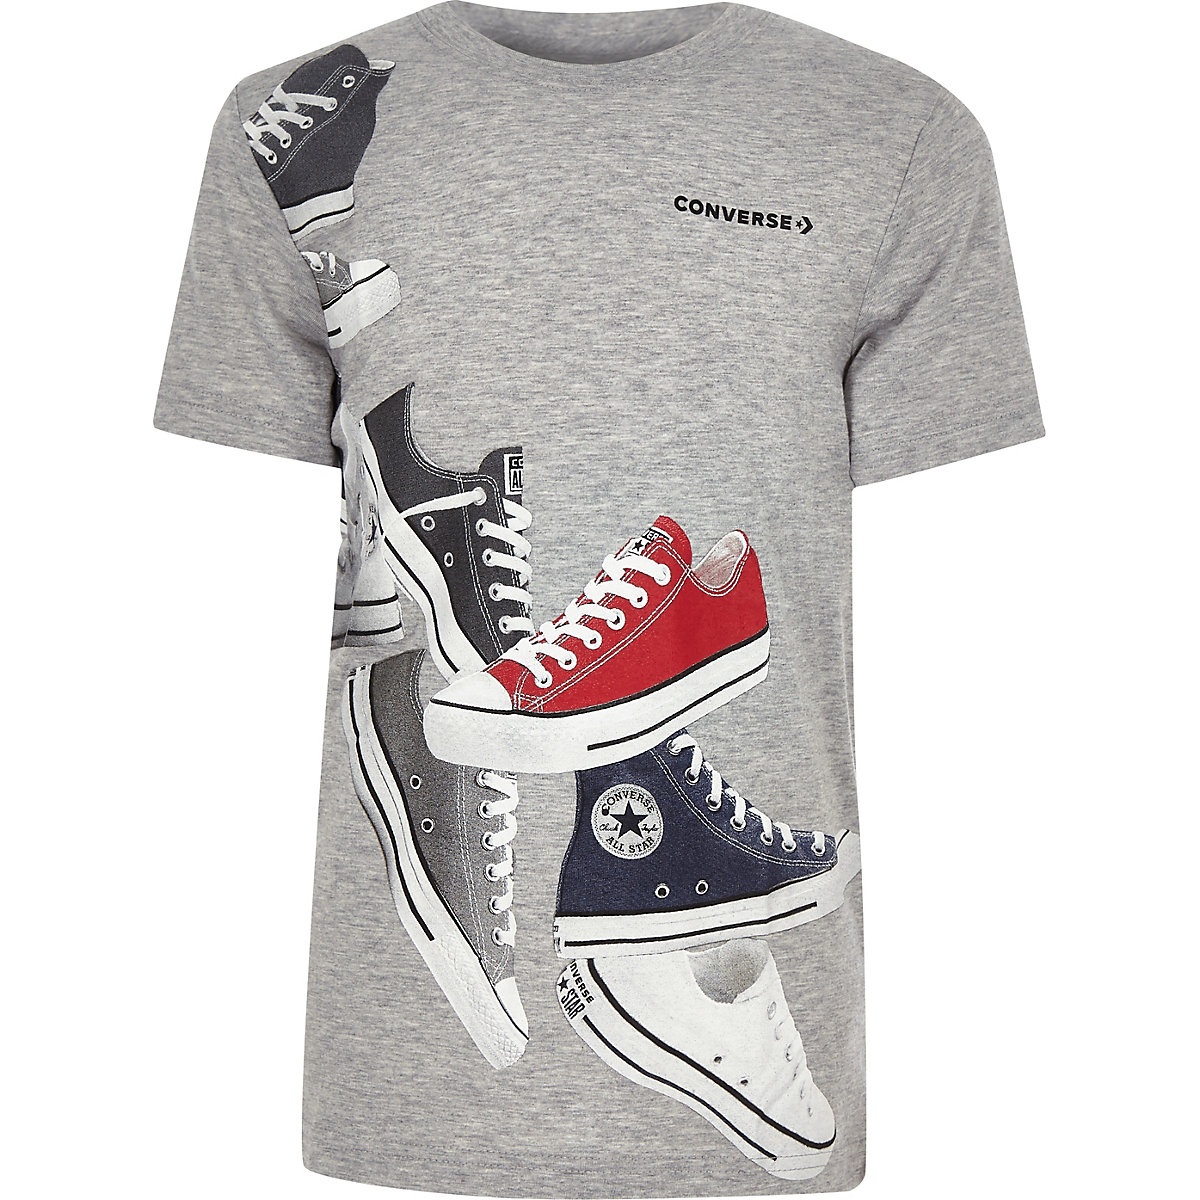 Boys Converse grey print T-shirt